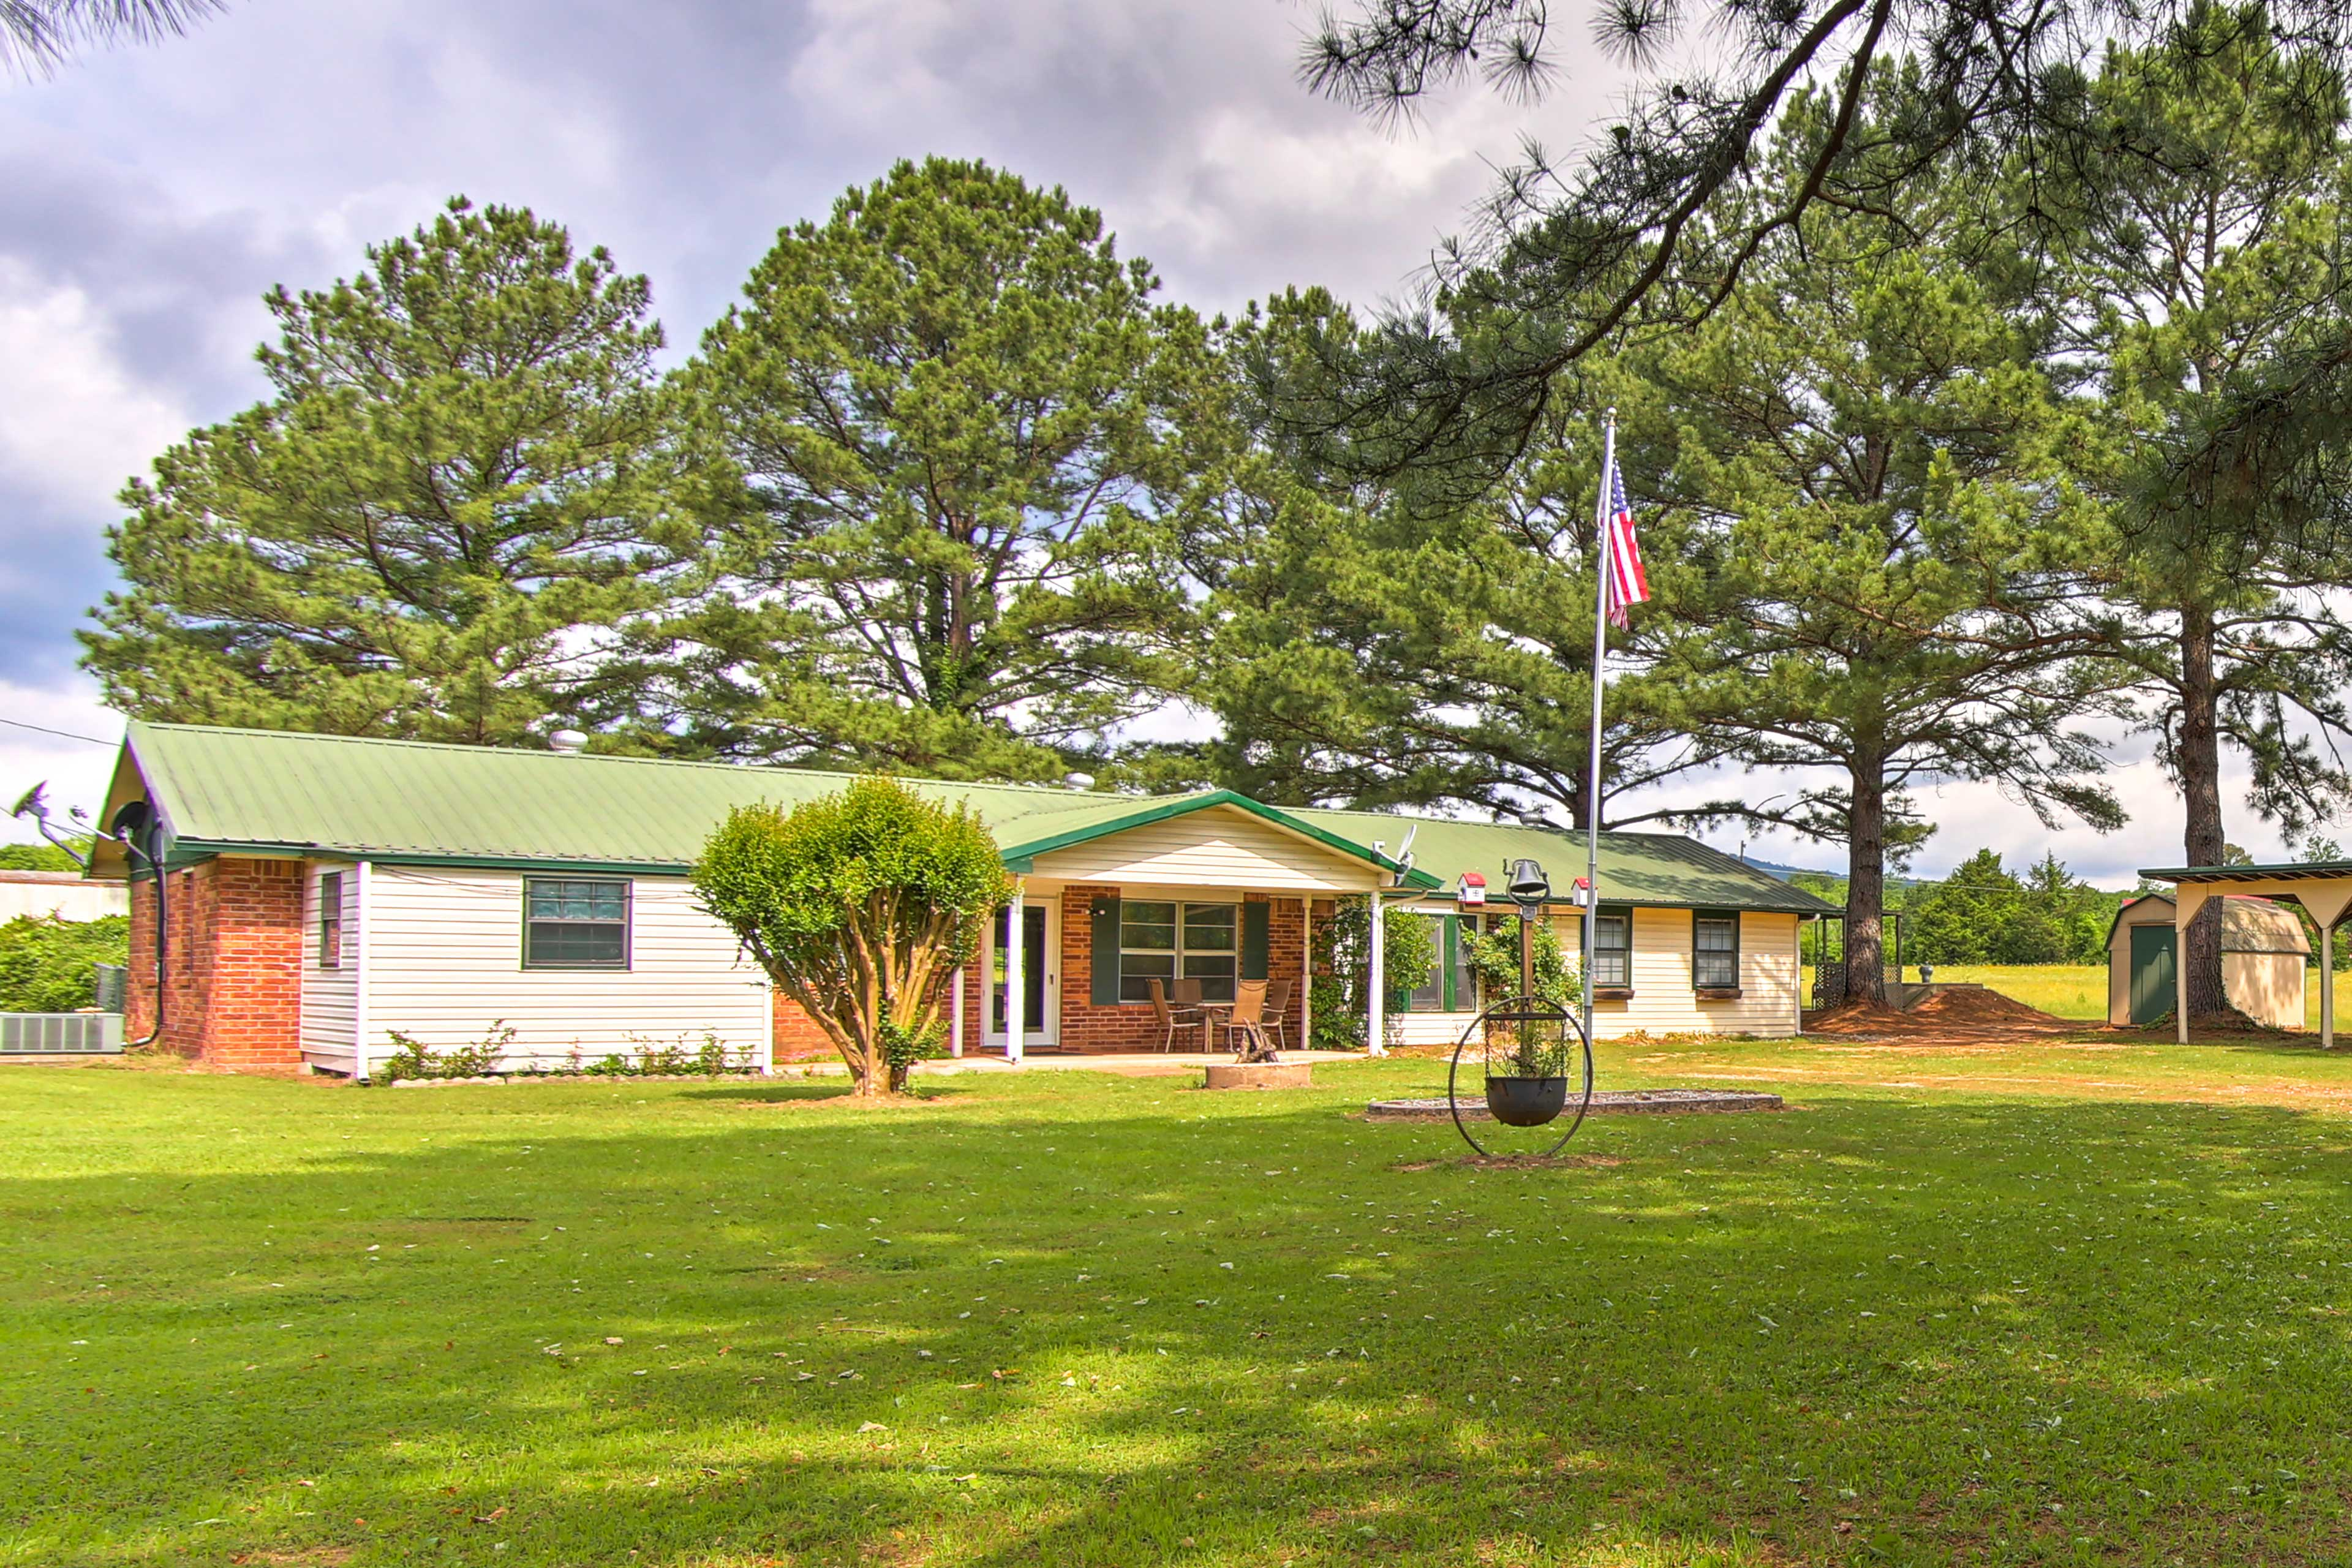 Explore the Clayton area from this 3-bedroom, 2.5 bath vacation rental house.